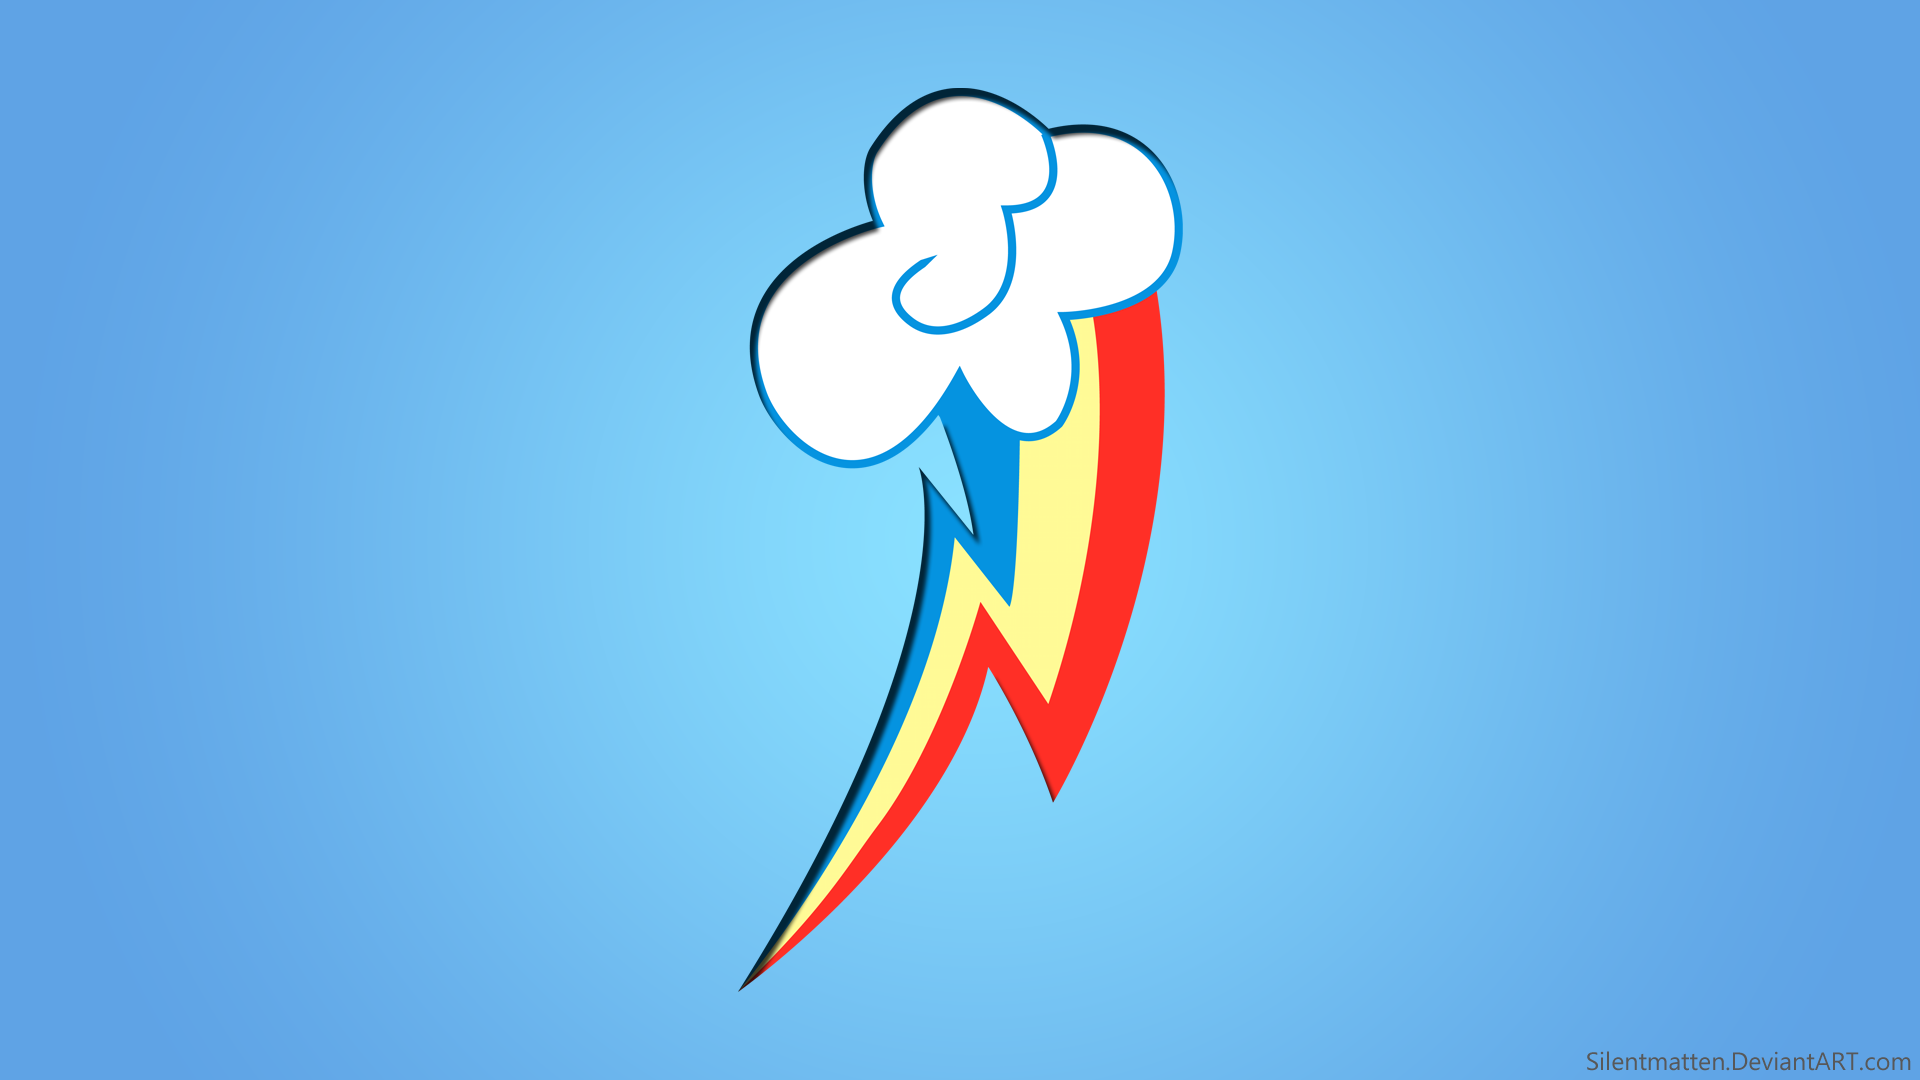 Rainbow dash cutie mark wallpaper by silentmatten on - My little pony cutie mark wallpaper ...